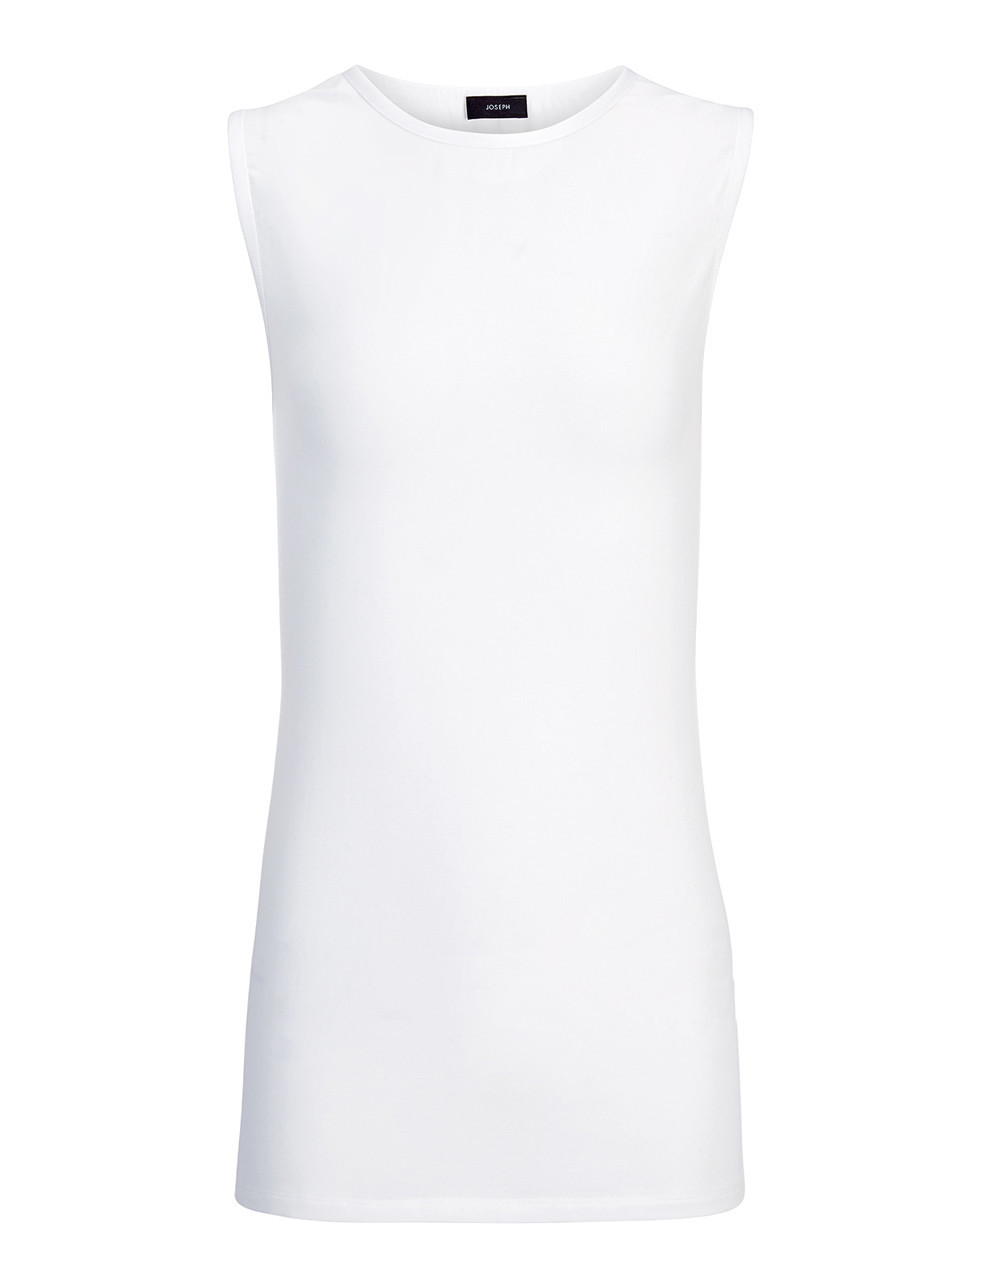 Cotton Lyocell Stretch Tank In White - neckline: round neck; pattern: plain; sleeve style: sleeveless; length: below the bottom; predominant colour: white; occasions: casual, creative work; style: top; fibres: cotton - 100%; fit: body skimming; sleeve length: sleeveless; pattern type: fabric; texture group: jersey - stretchy/drapey; season: s/s 2016; wardrobe: basic